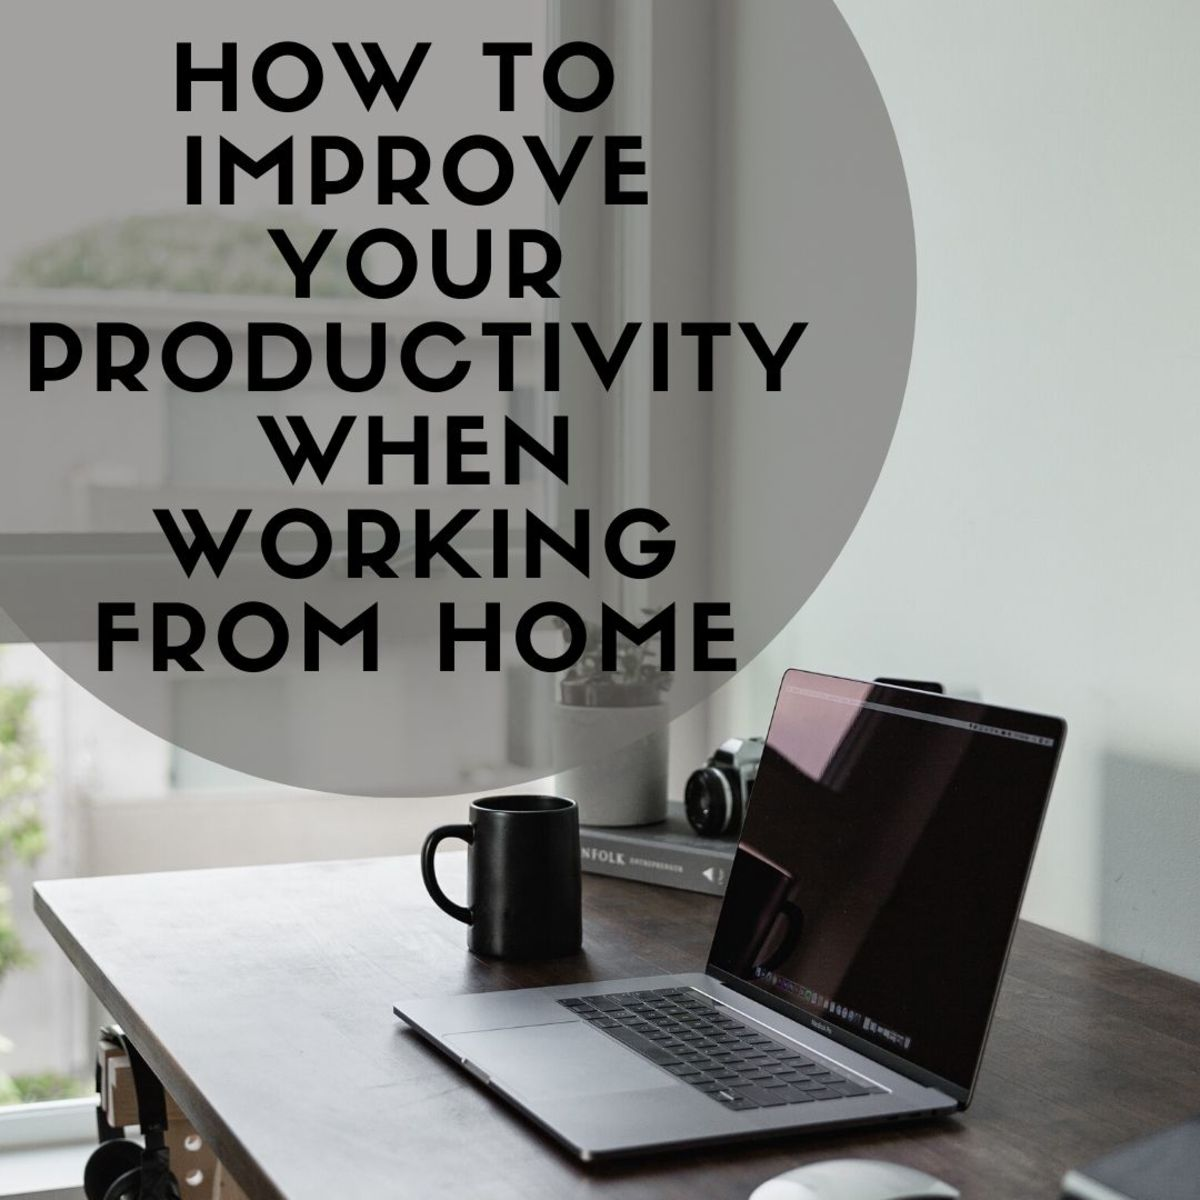 These 10 tips and tricks will help you work from home more effectively.